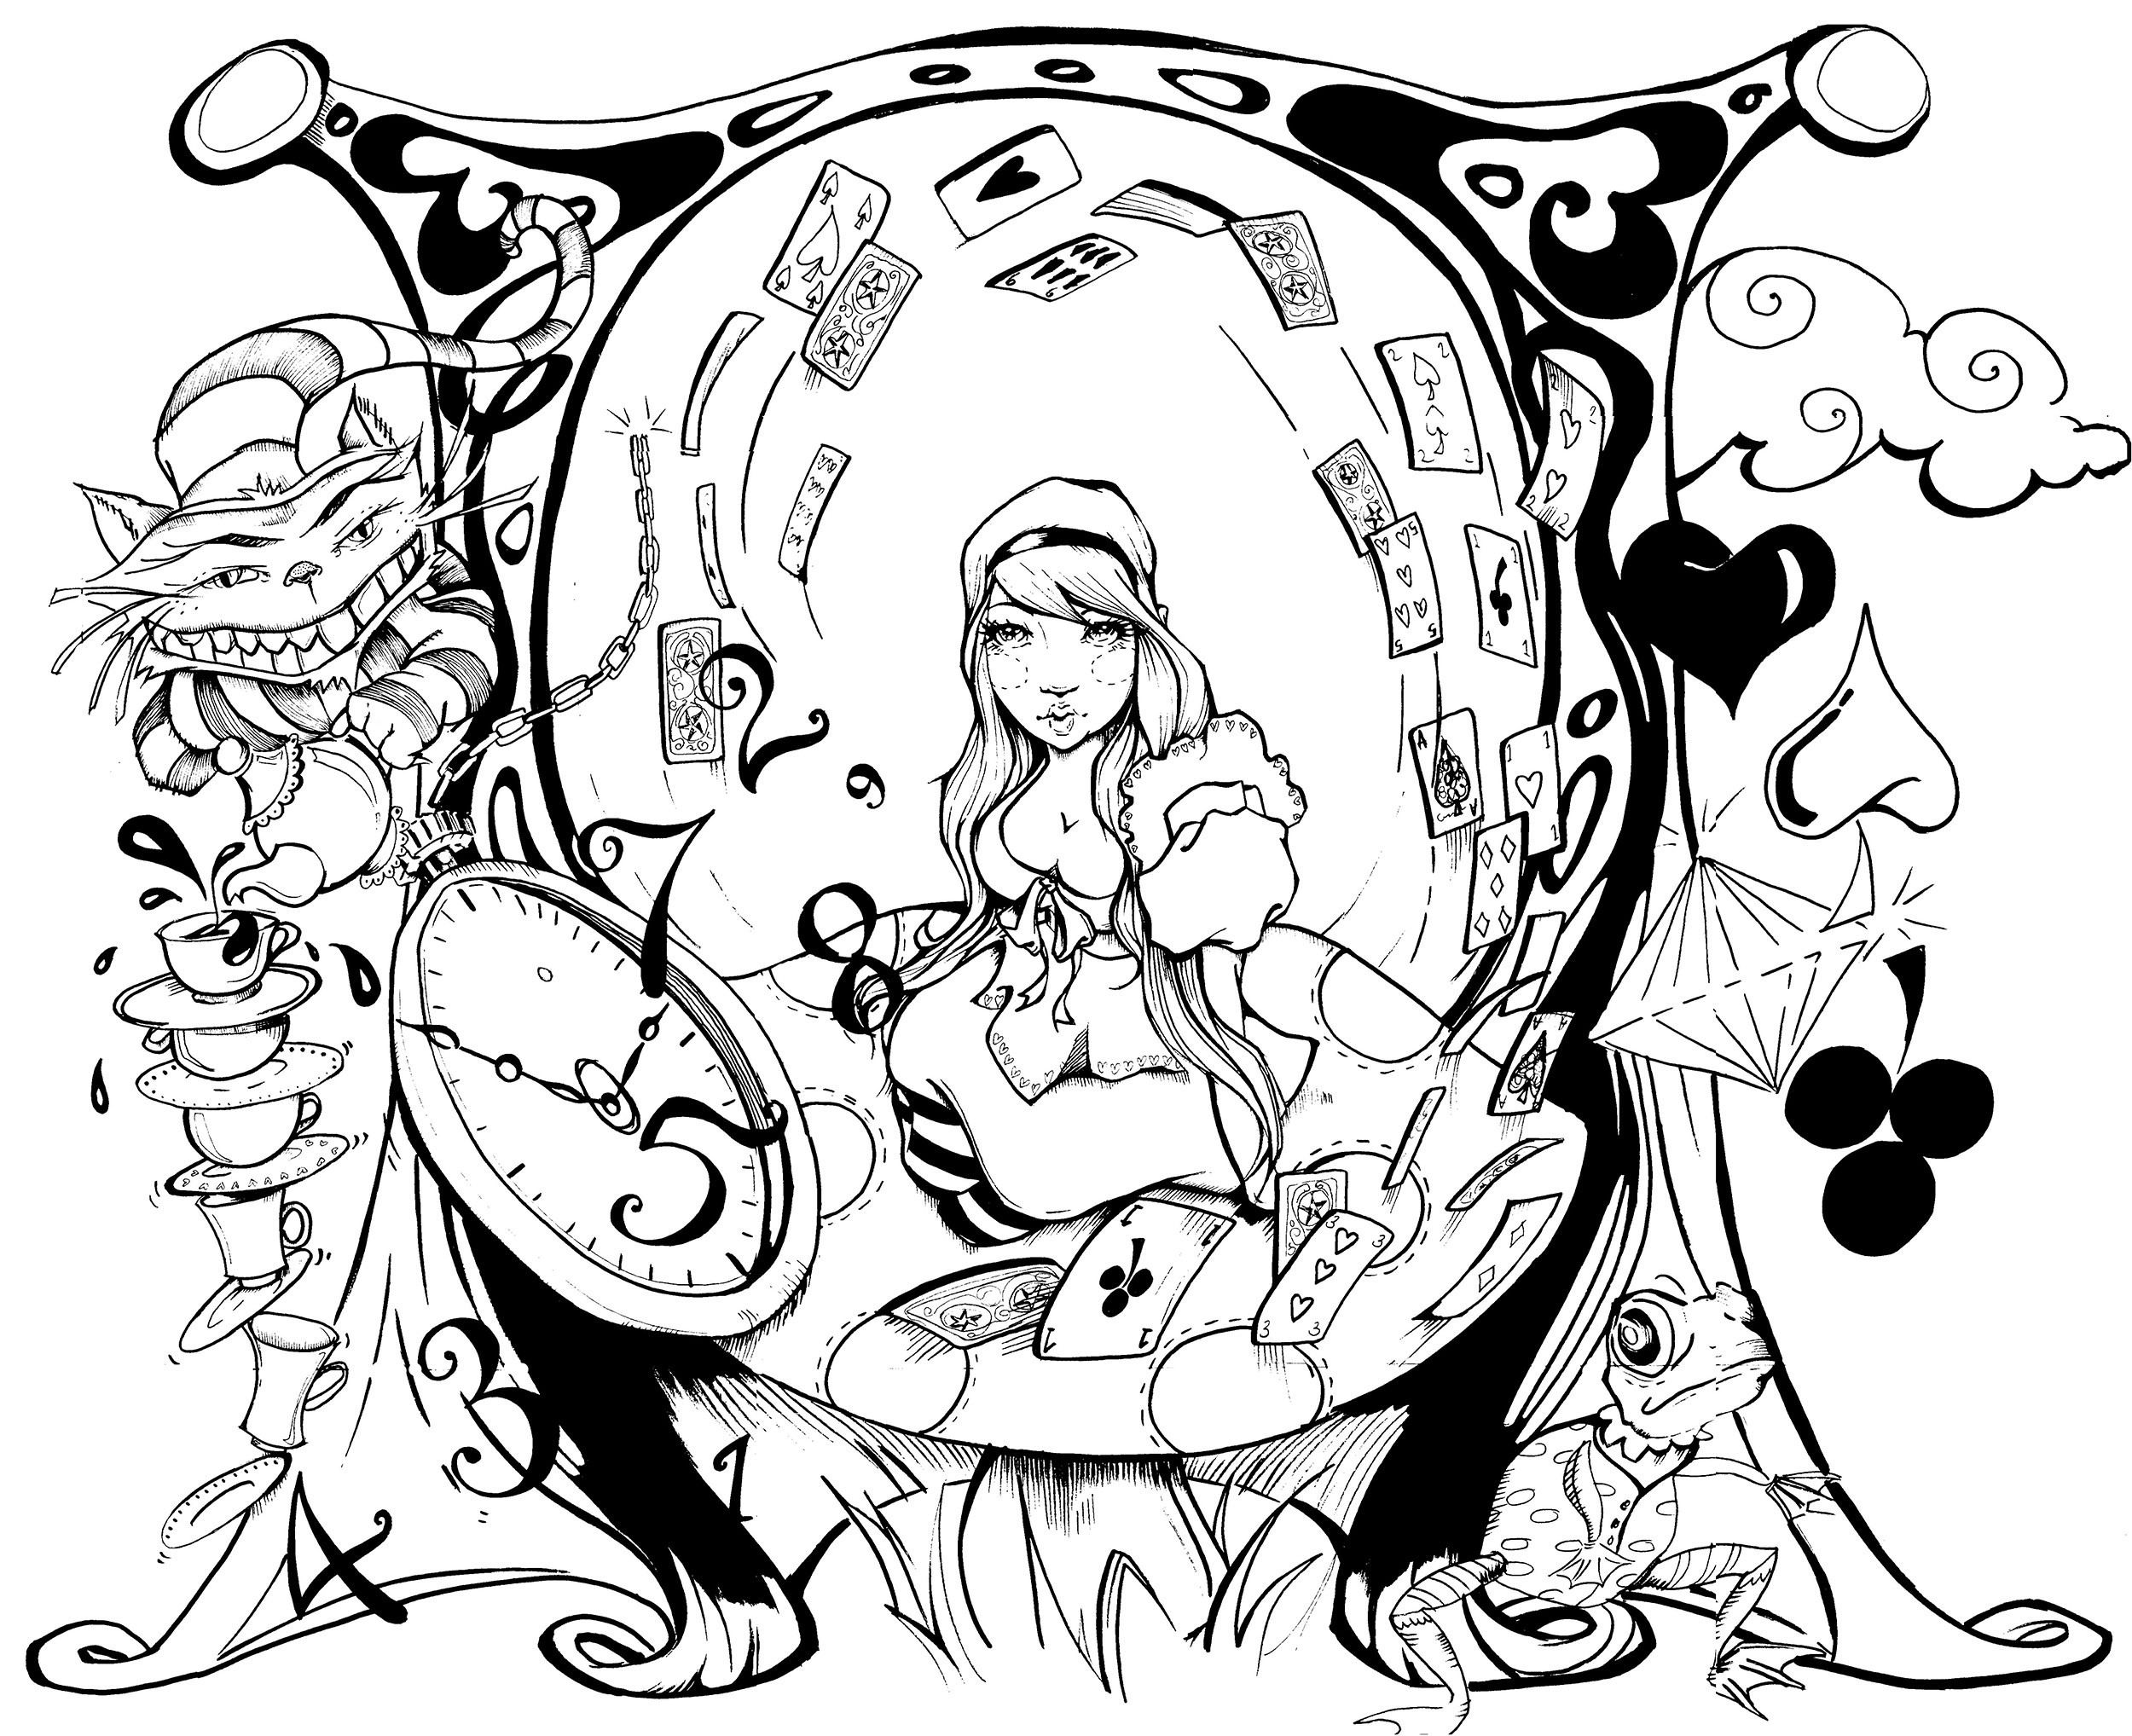 Free coloring pages, Coloring books, Cute coloring pages